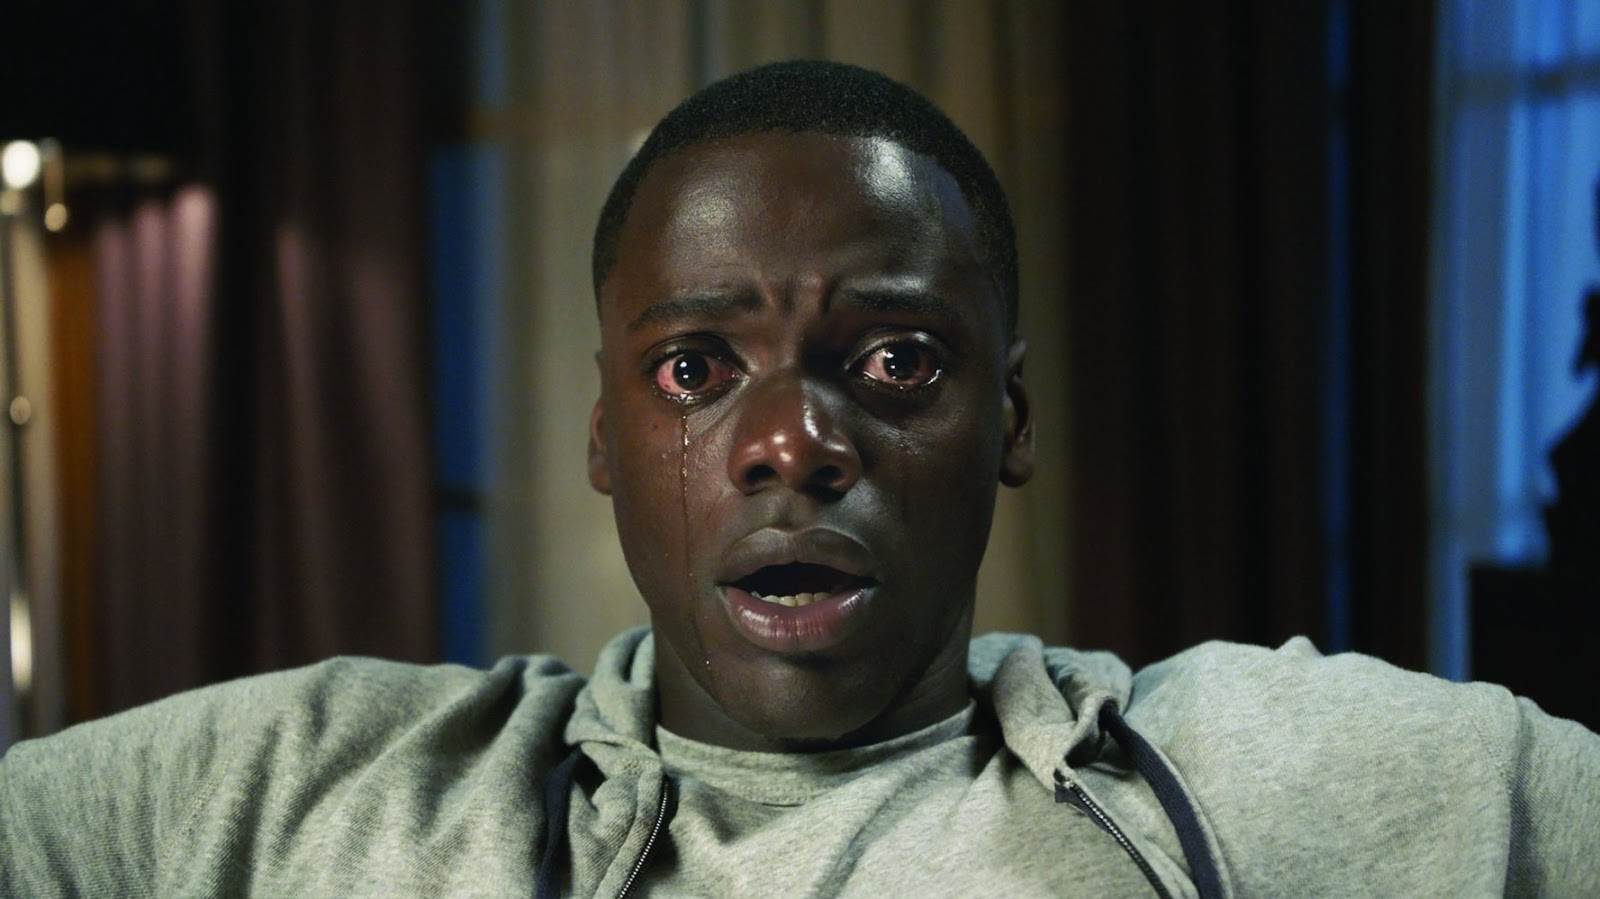 oscar 2018, cinema, movies, filmes, indicações oscar 2018, get out, corra